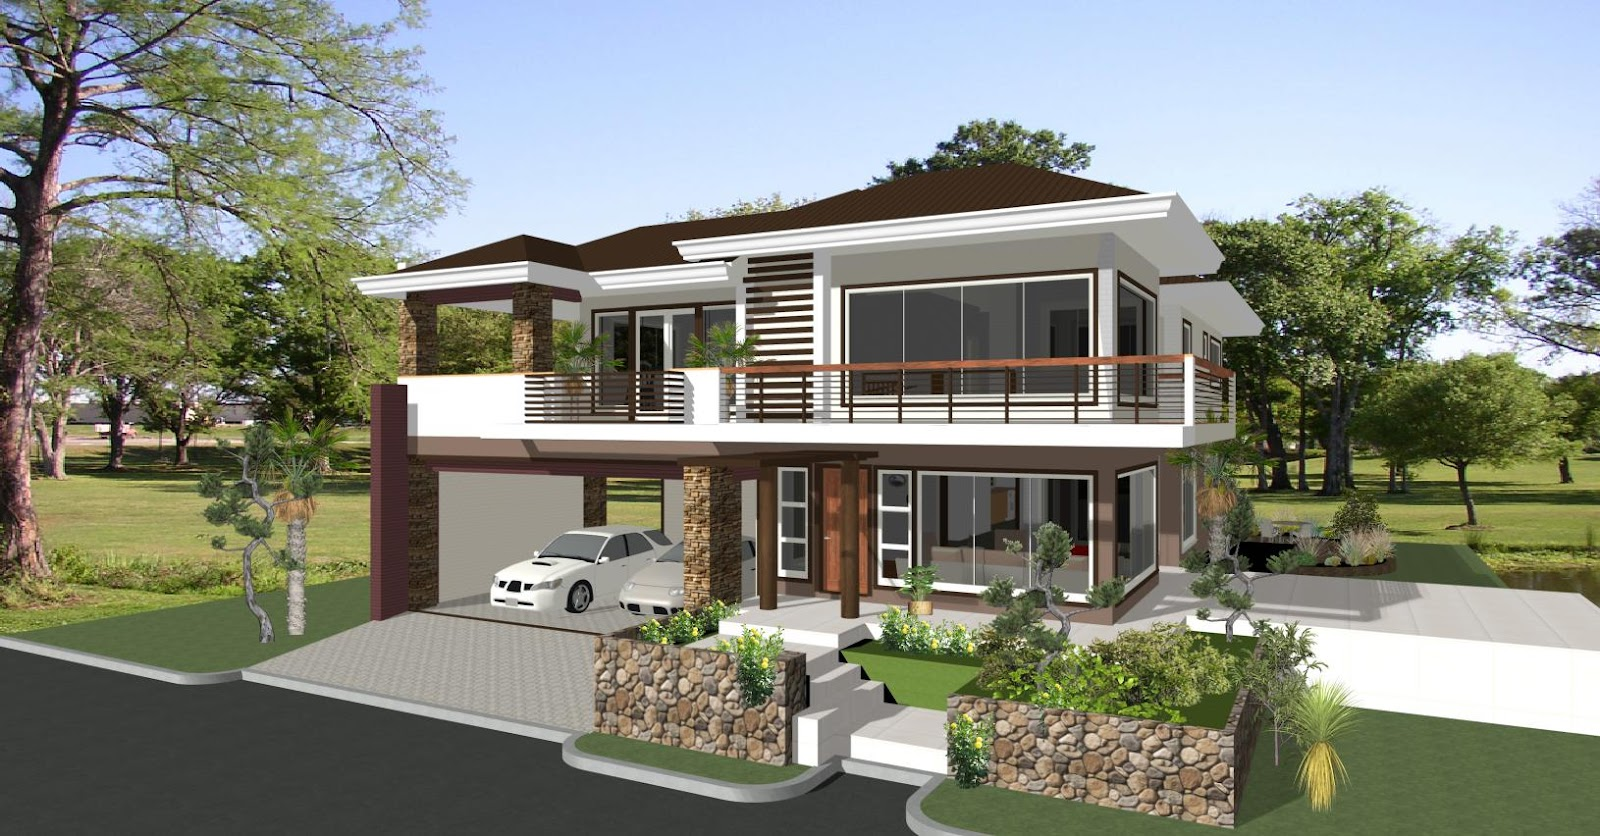 House designs in the philippines in iloilo by erecre group for House style descriptions